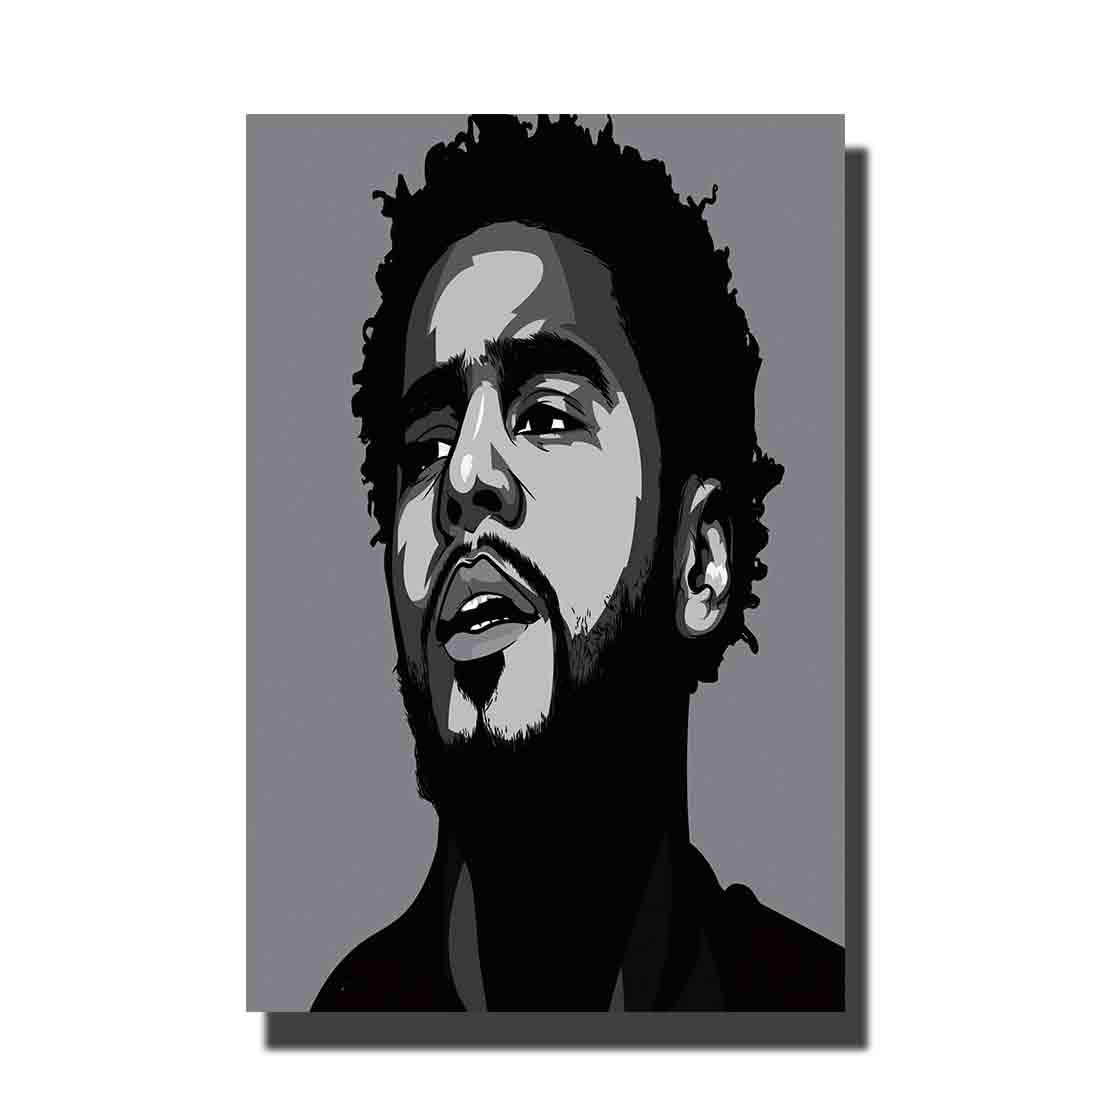 Art Poster J Cole American Hip Hop Artist Forest Hills Drive L-W Wall Canvas Modern painting Decor12x18 24x36 27x40 image